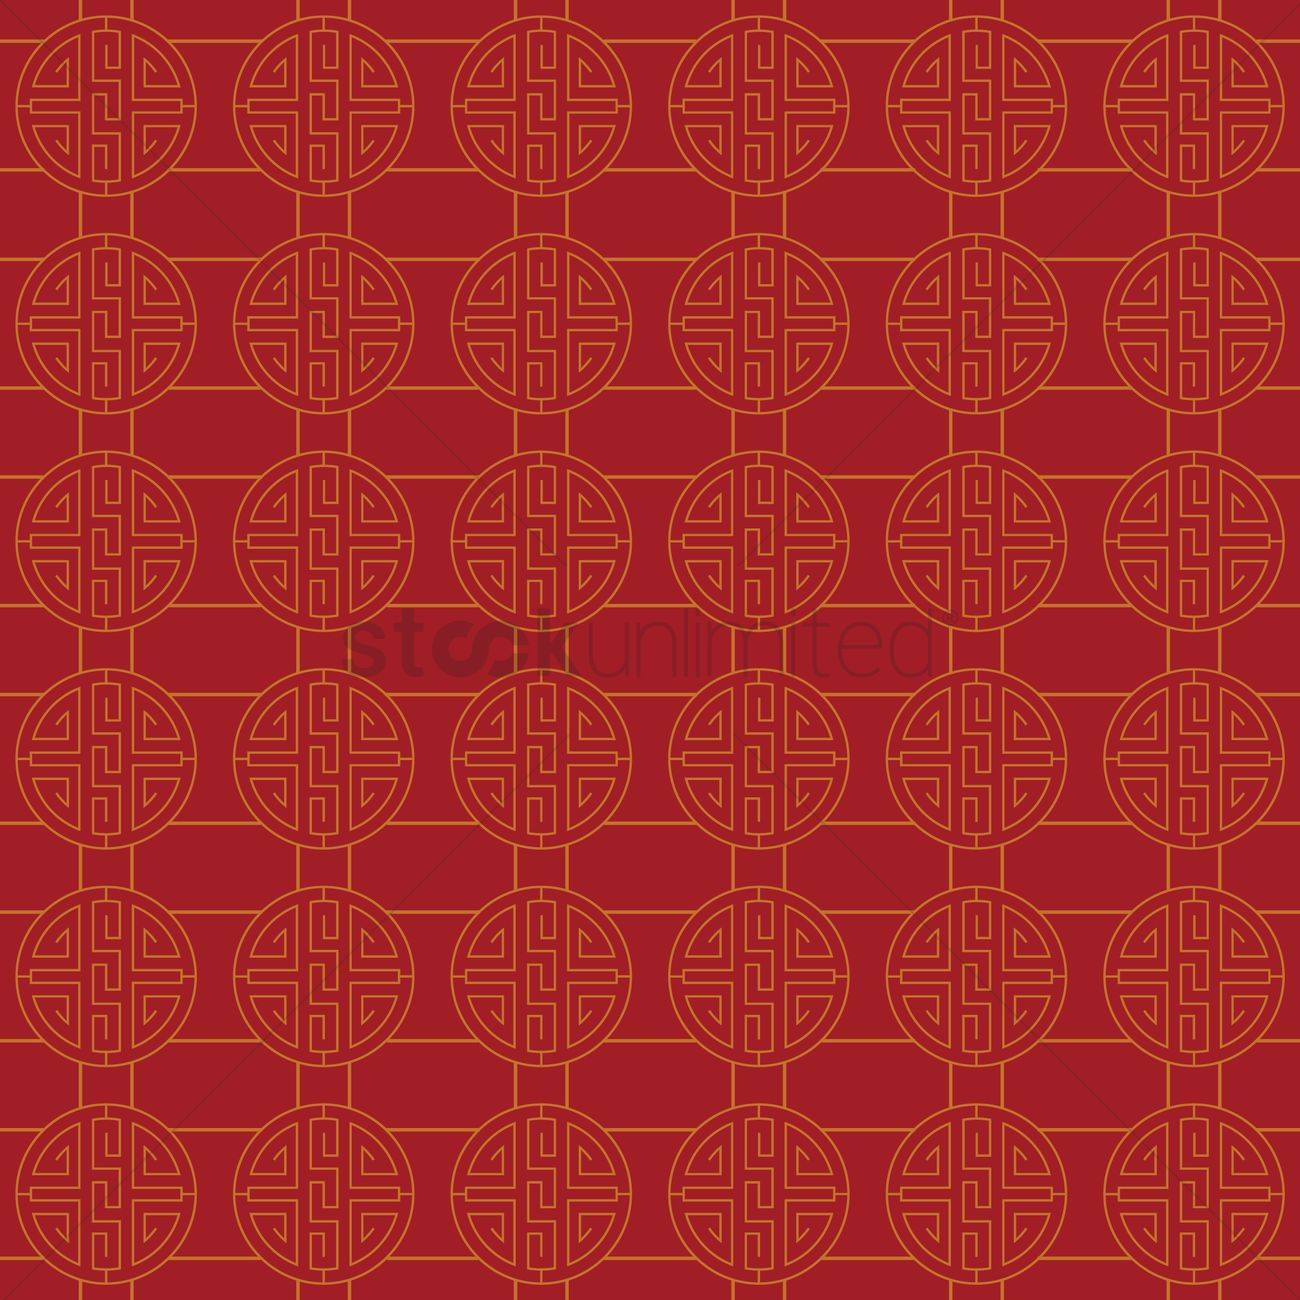 Chinese pattern background vector image 1577046 for Chinese vector